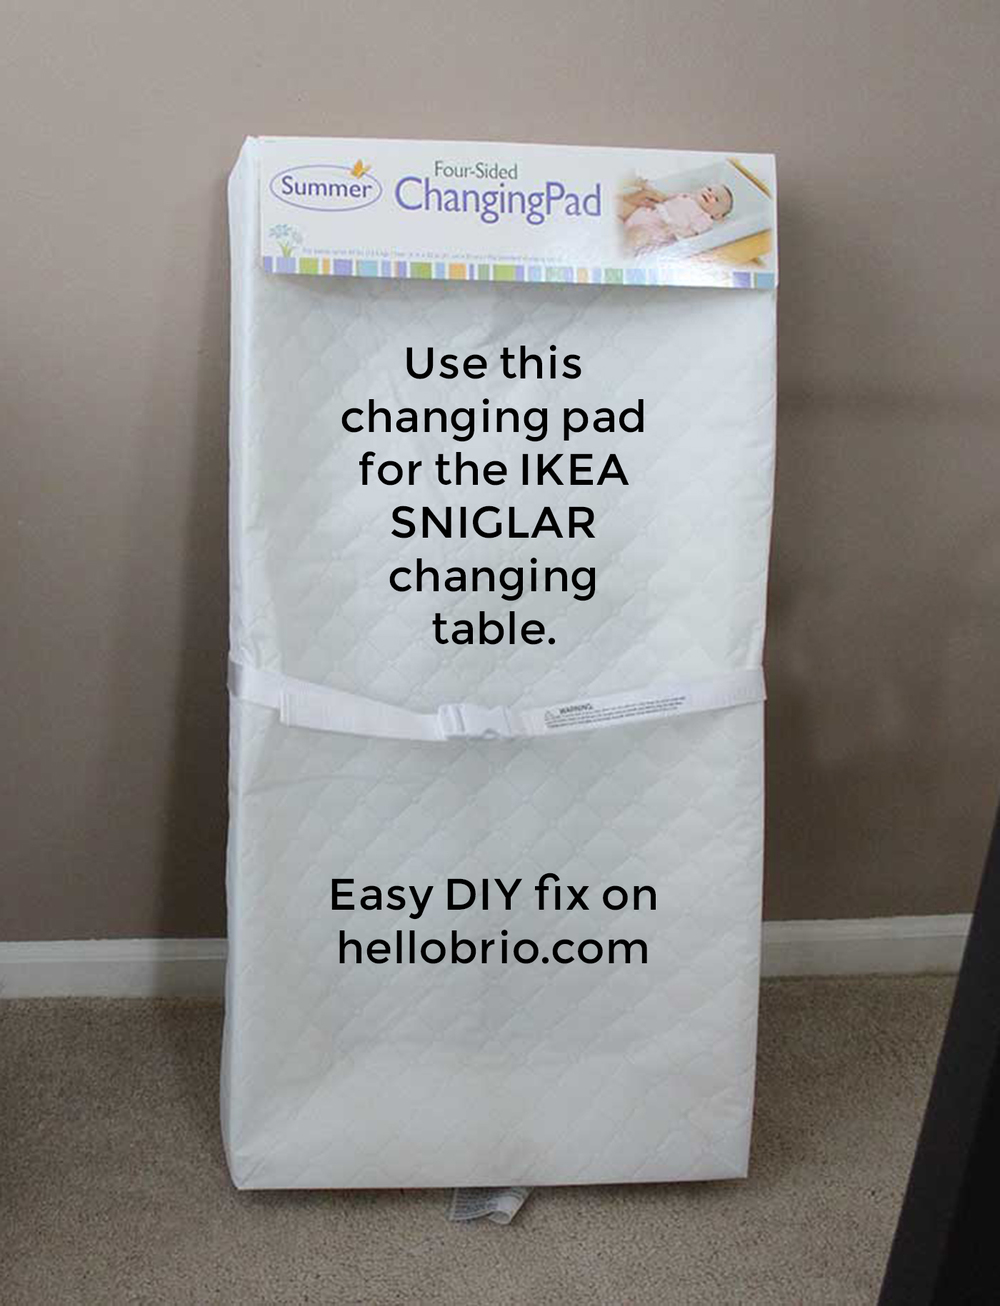 Summer Four-Sided ChangingPad - perfect for a IKEA DIY hack - Easy baby DIY project for a changing table pad for the IKEA SNIGLAR